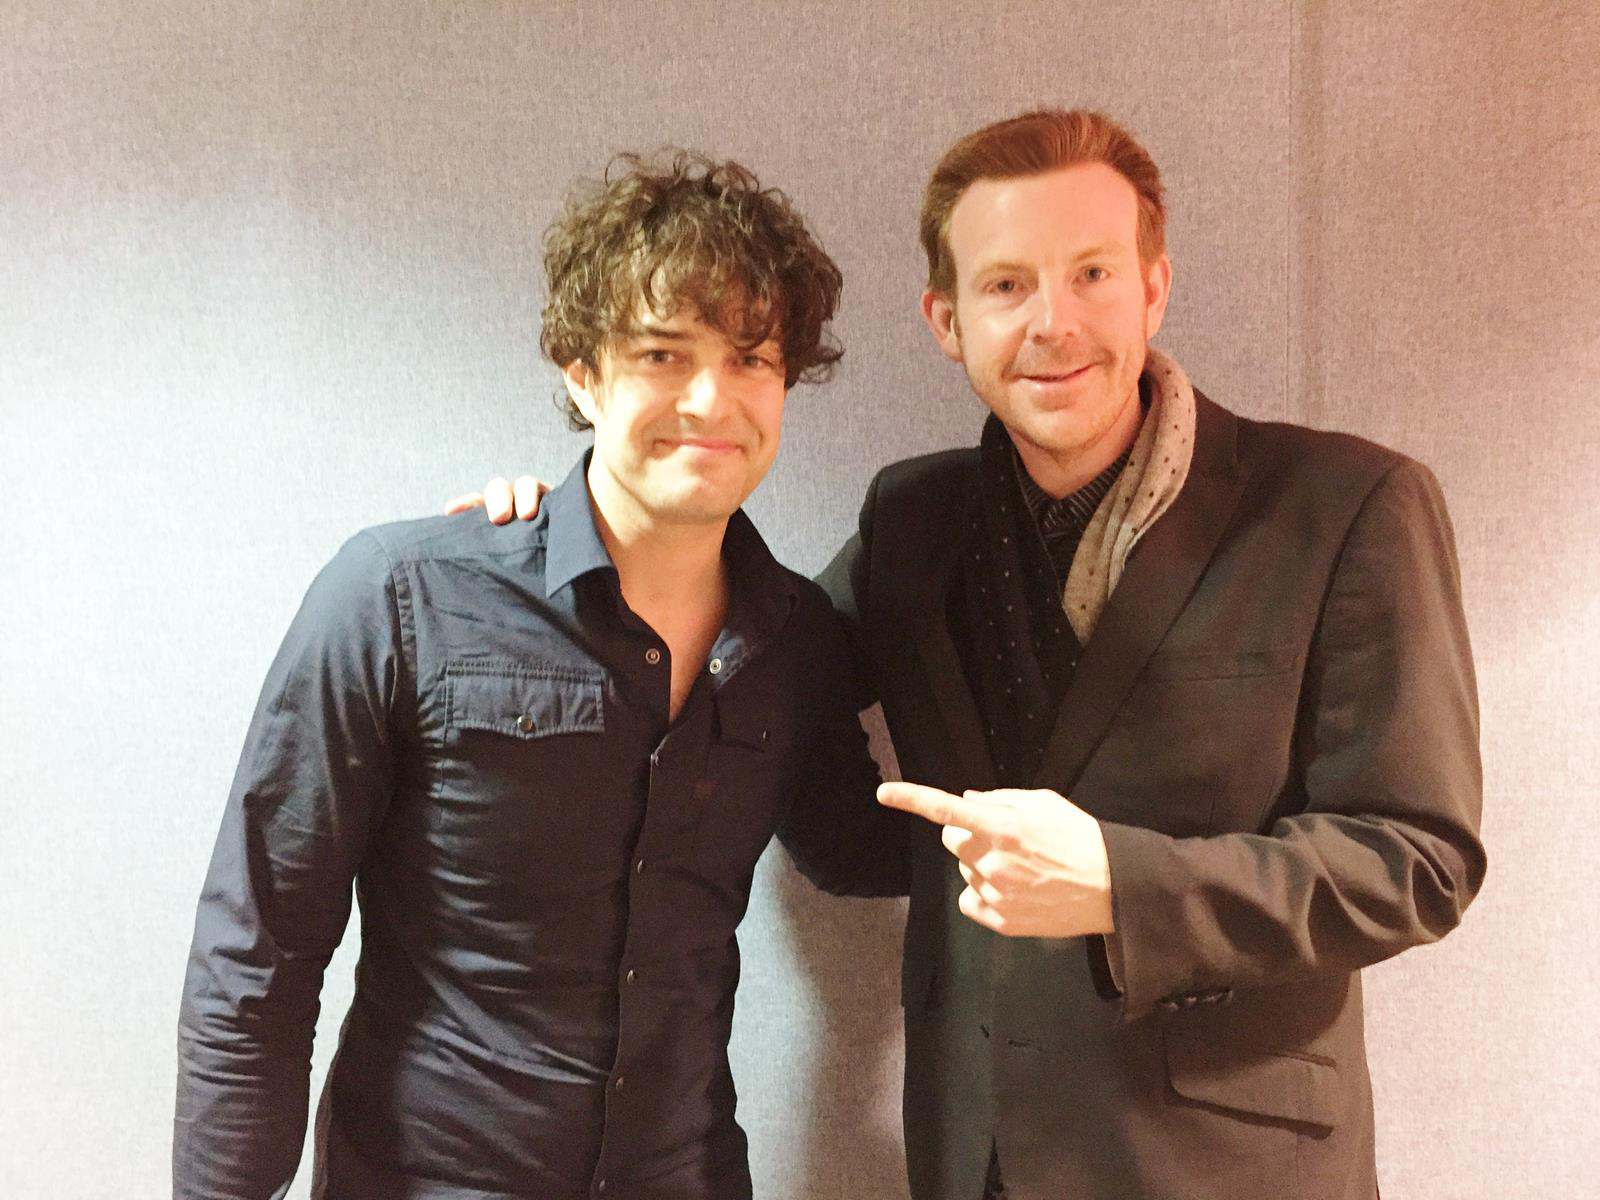 Enjoy Celebrity Radio's Lee Mead Life Story Interview….. Lee Mead shot to fame on BBC1's 'Any Dream Will Do' where he auditioned, and ended up […]